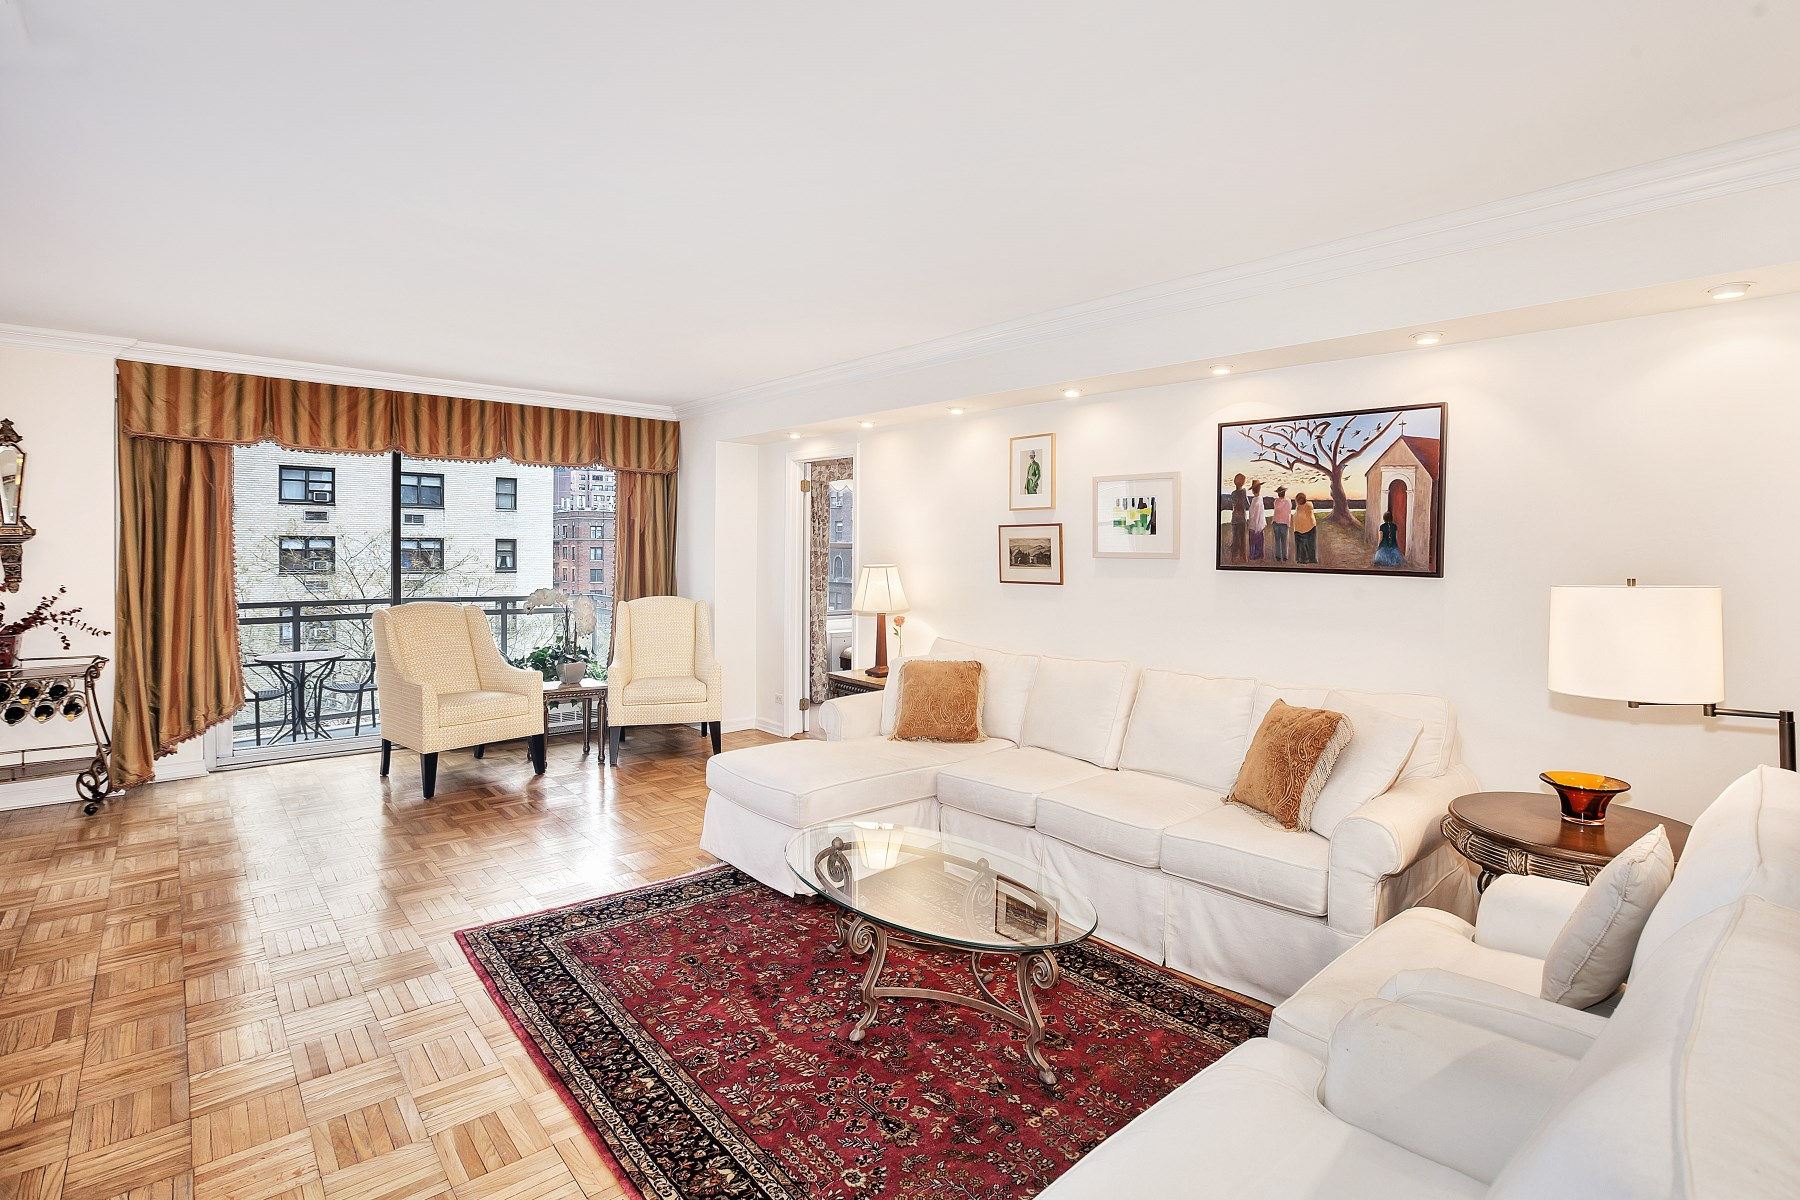 Co-op for Sale at 400 East 56th Street, Apt. 4B 400 East 56th Street Apt 4b Sutton Place, New York, New York 10022 United States